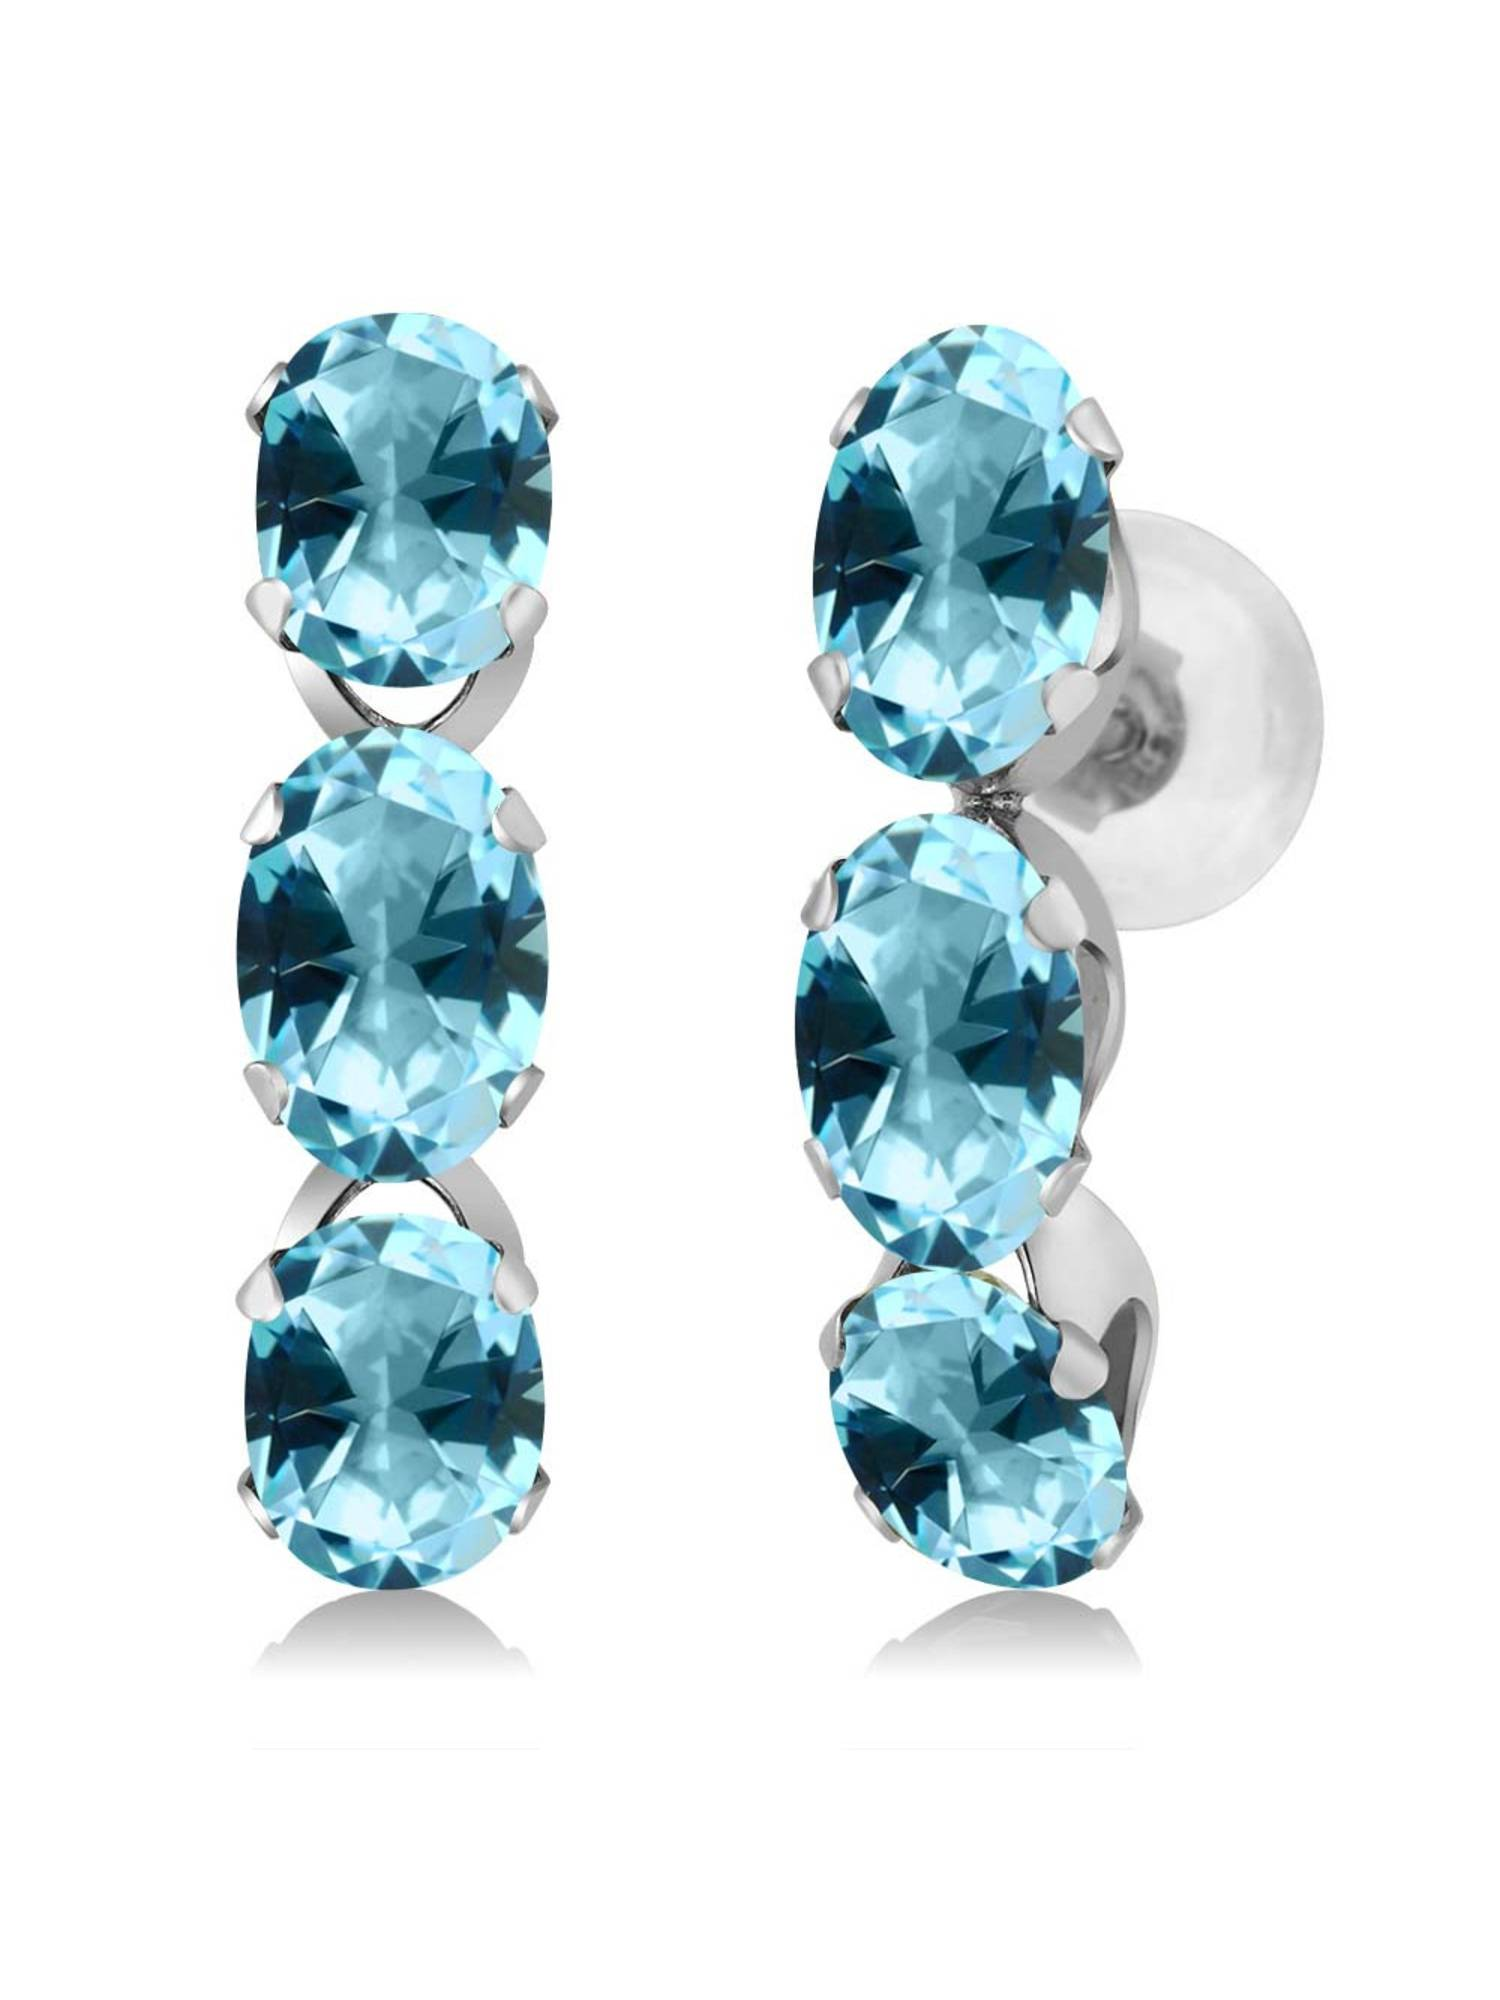 14K White Gold Earrings Set with Oval Ice Blue Topaz from Swarovski by